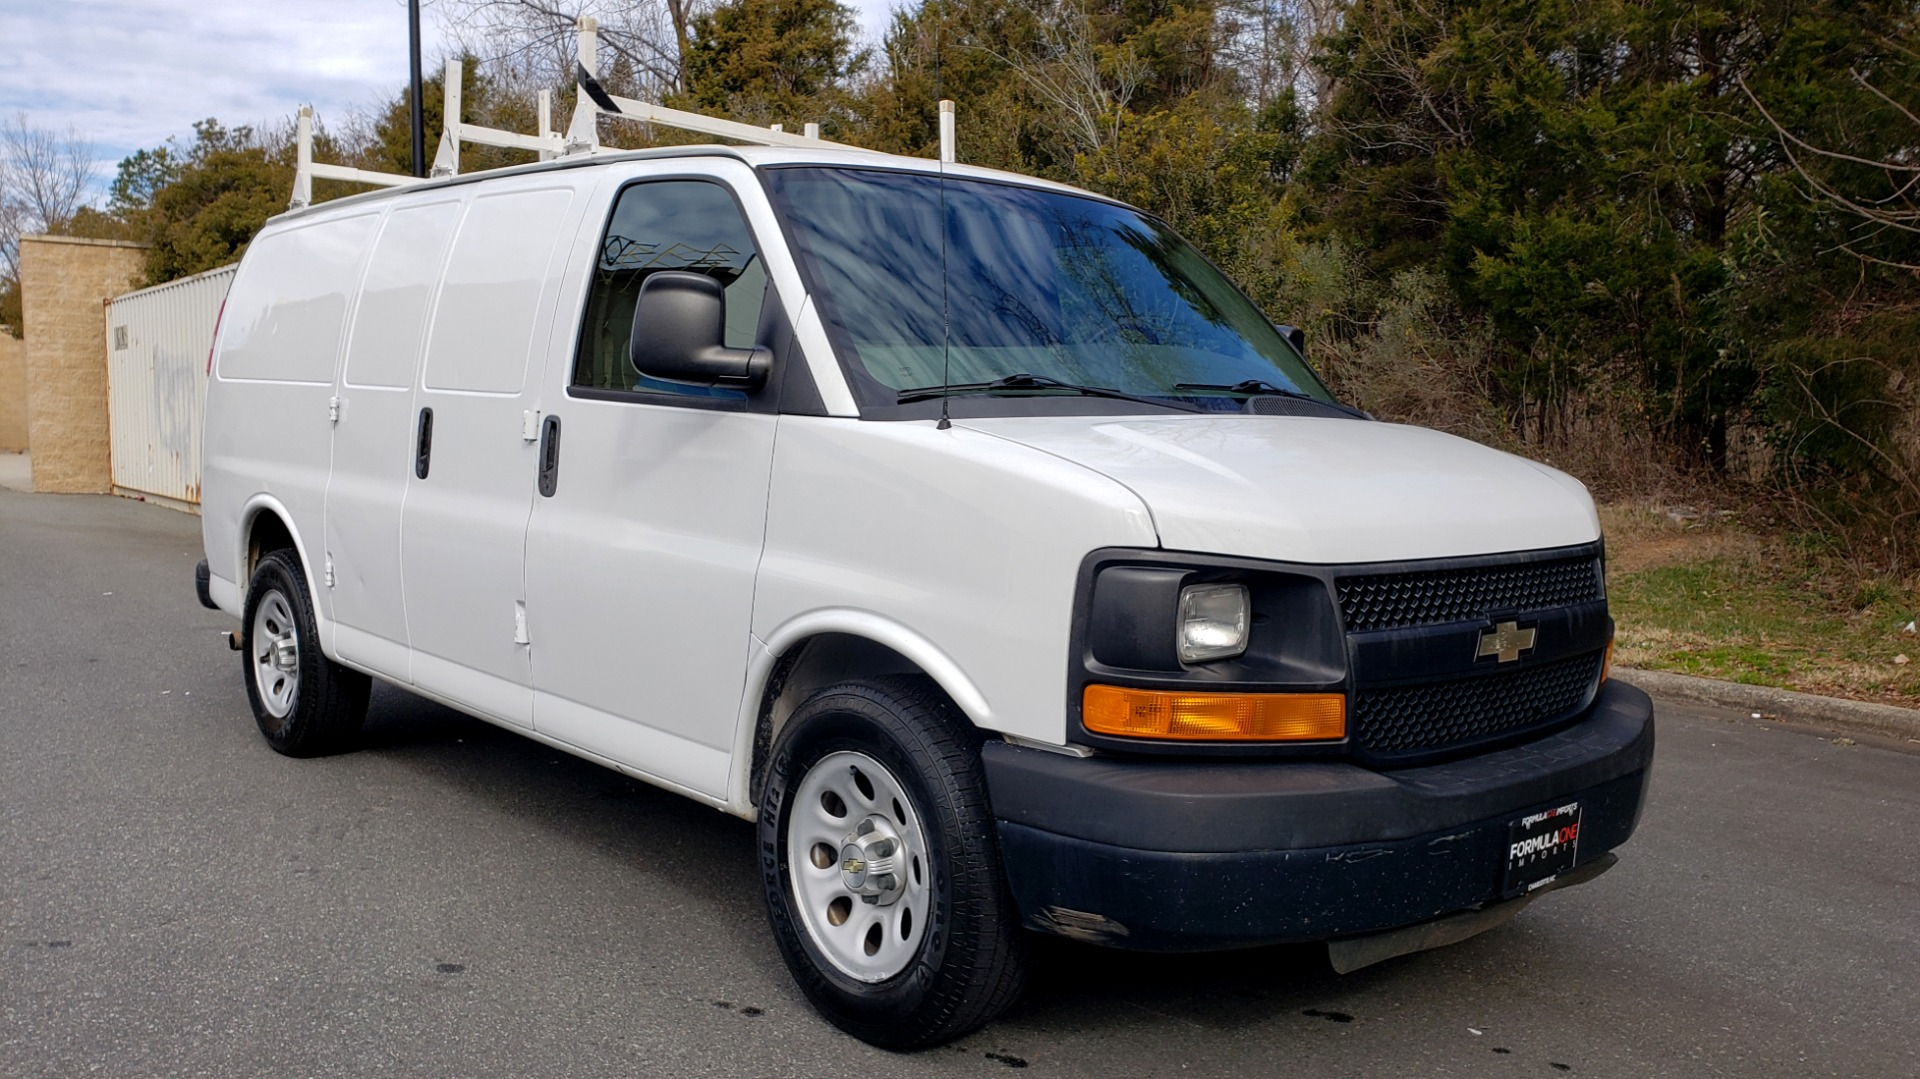 Used 2012 Chevrolet EXPRESS CARGO VAN 1500 / 135 WB / 4.3L V6 / 4-SPD AUTO / ROOF RACK for sale $10,995 at Formula Imports in Charlotte NC 28227 4